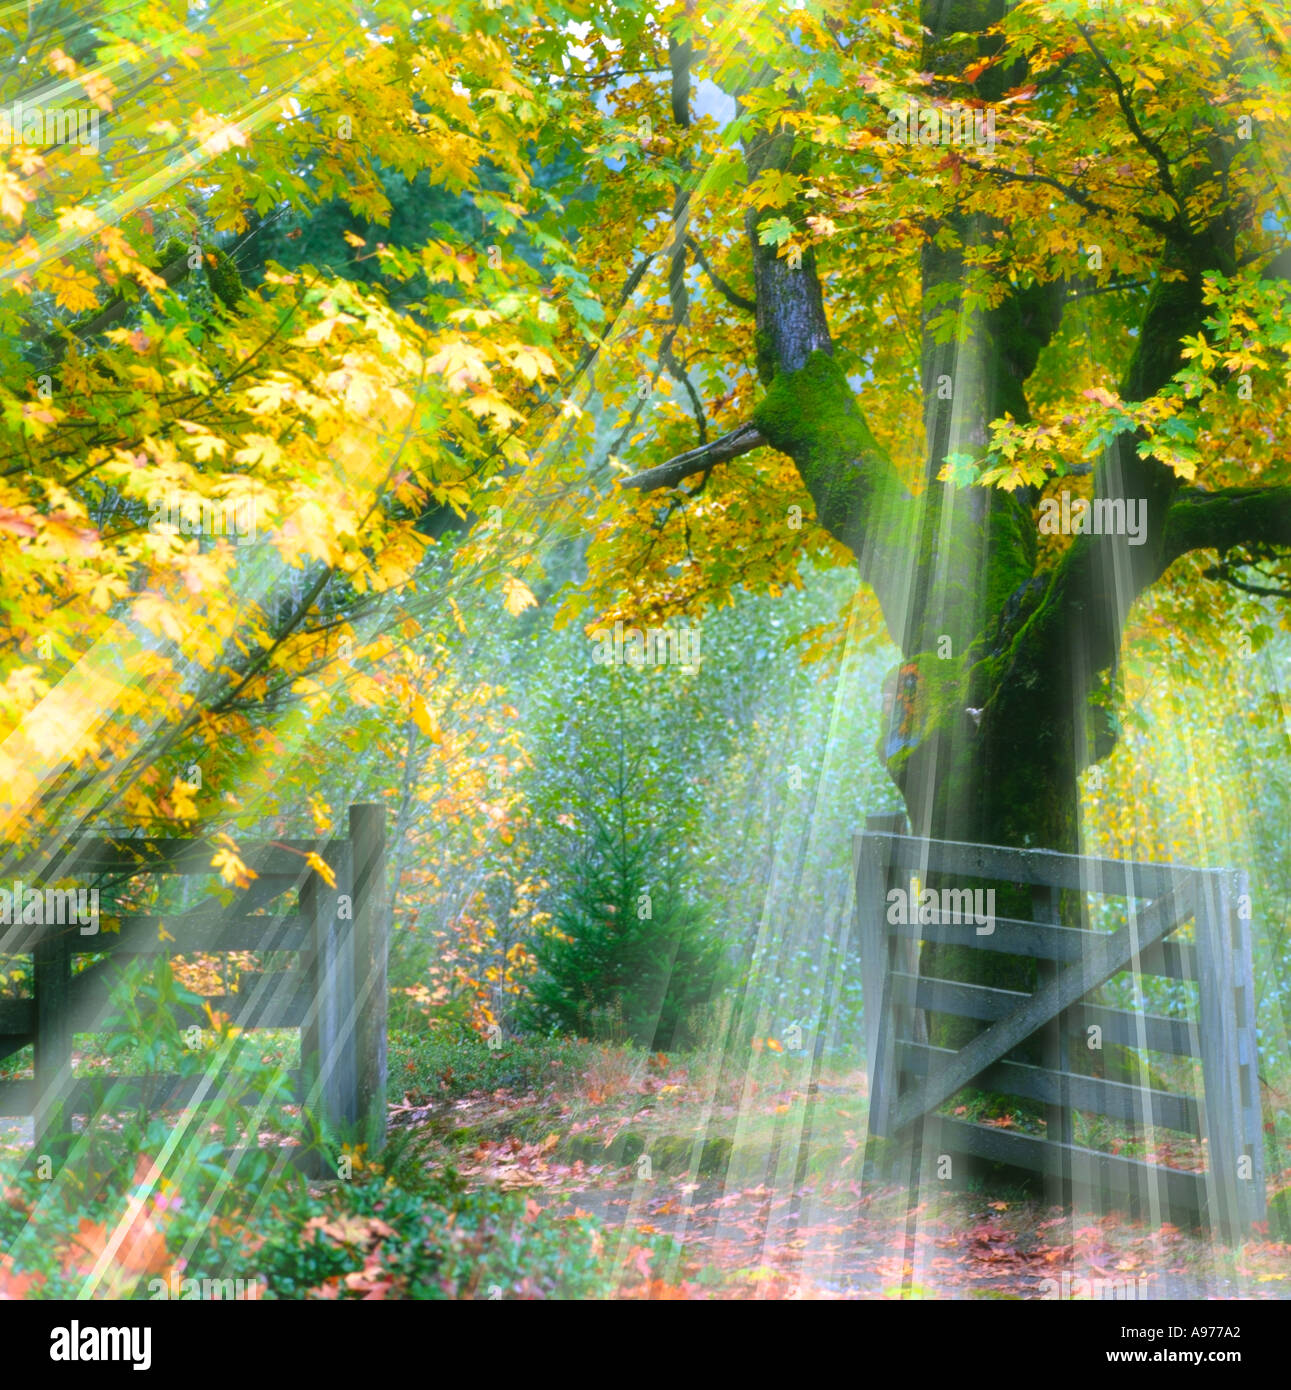 sunlight rays of shining brightly through tree branches in Autumn - Stock Image